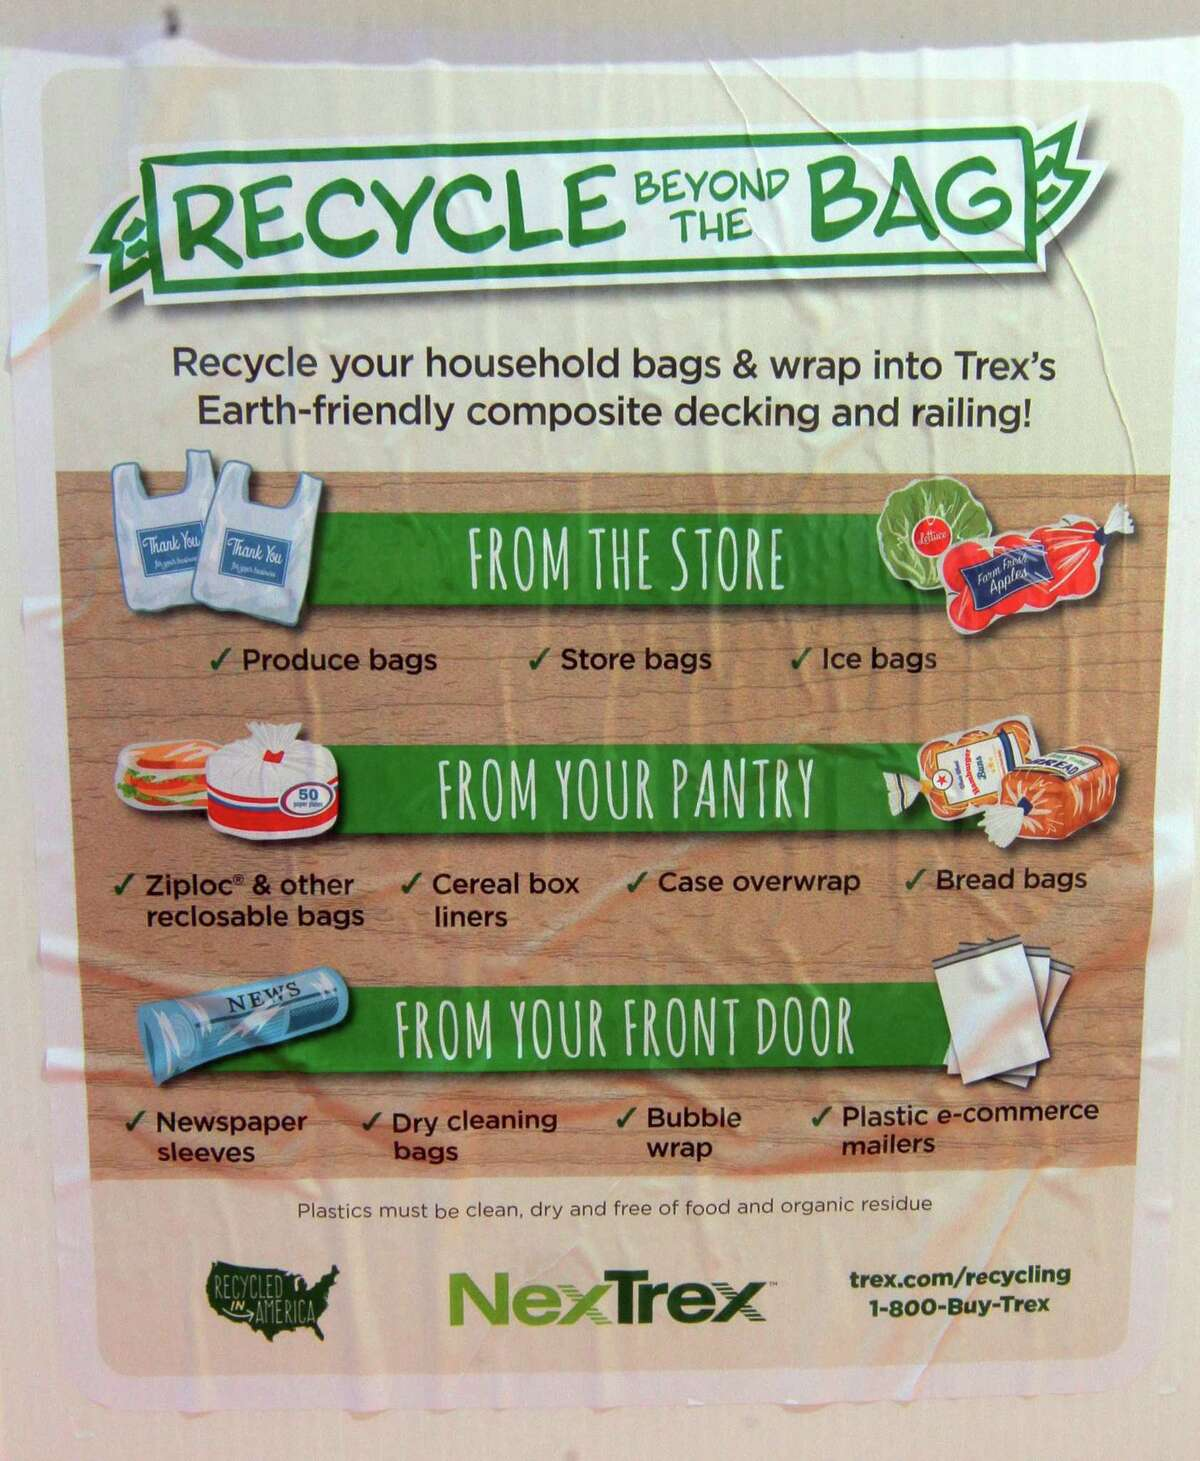 Info is posted on the side of a NexTrex recycling bin at Trumbull Town Hall in Trumbull, Conn., on Saturday Feb. 6, 2020. April Lang, with Sustainable Trumbull, is coordinating a recycling challenge to get plastic bags out of landfills and prevent them from becoming litter.